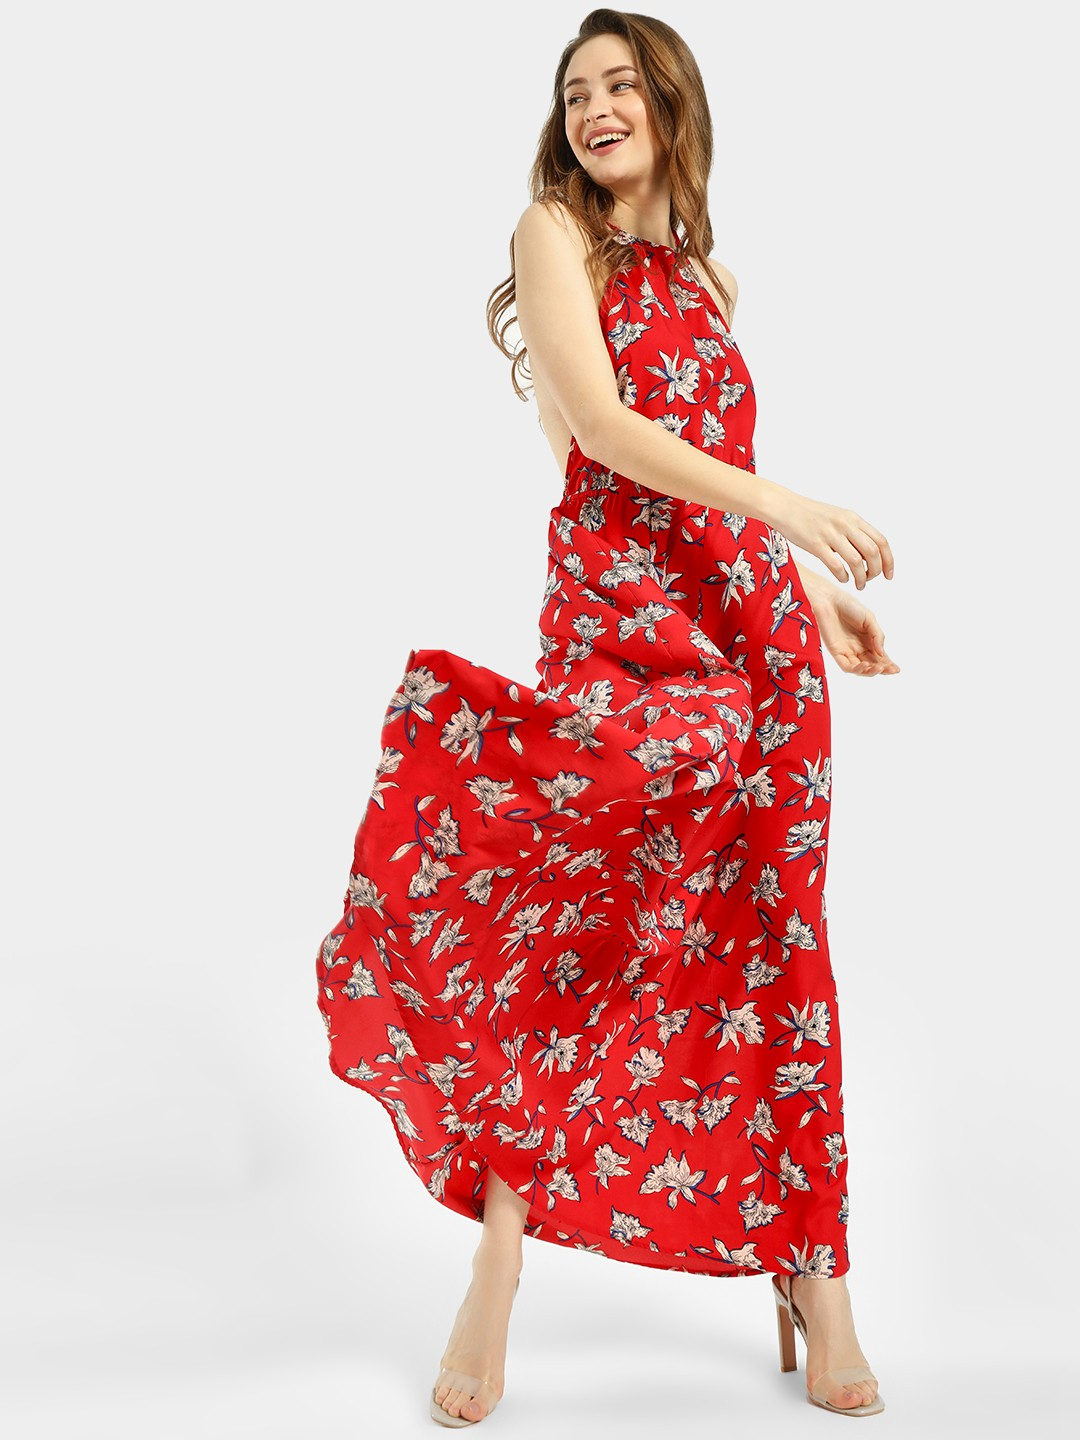 The Gud Look Red/White Floral Print T-Strap Maxi Dress 1